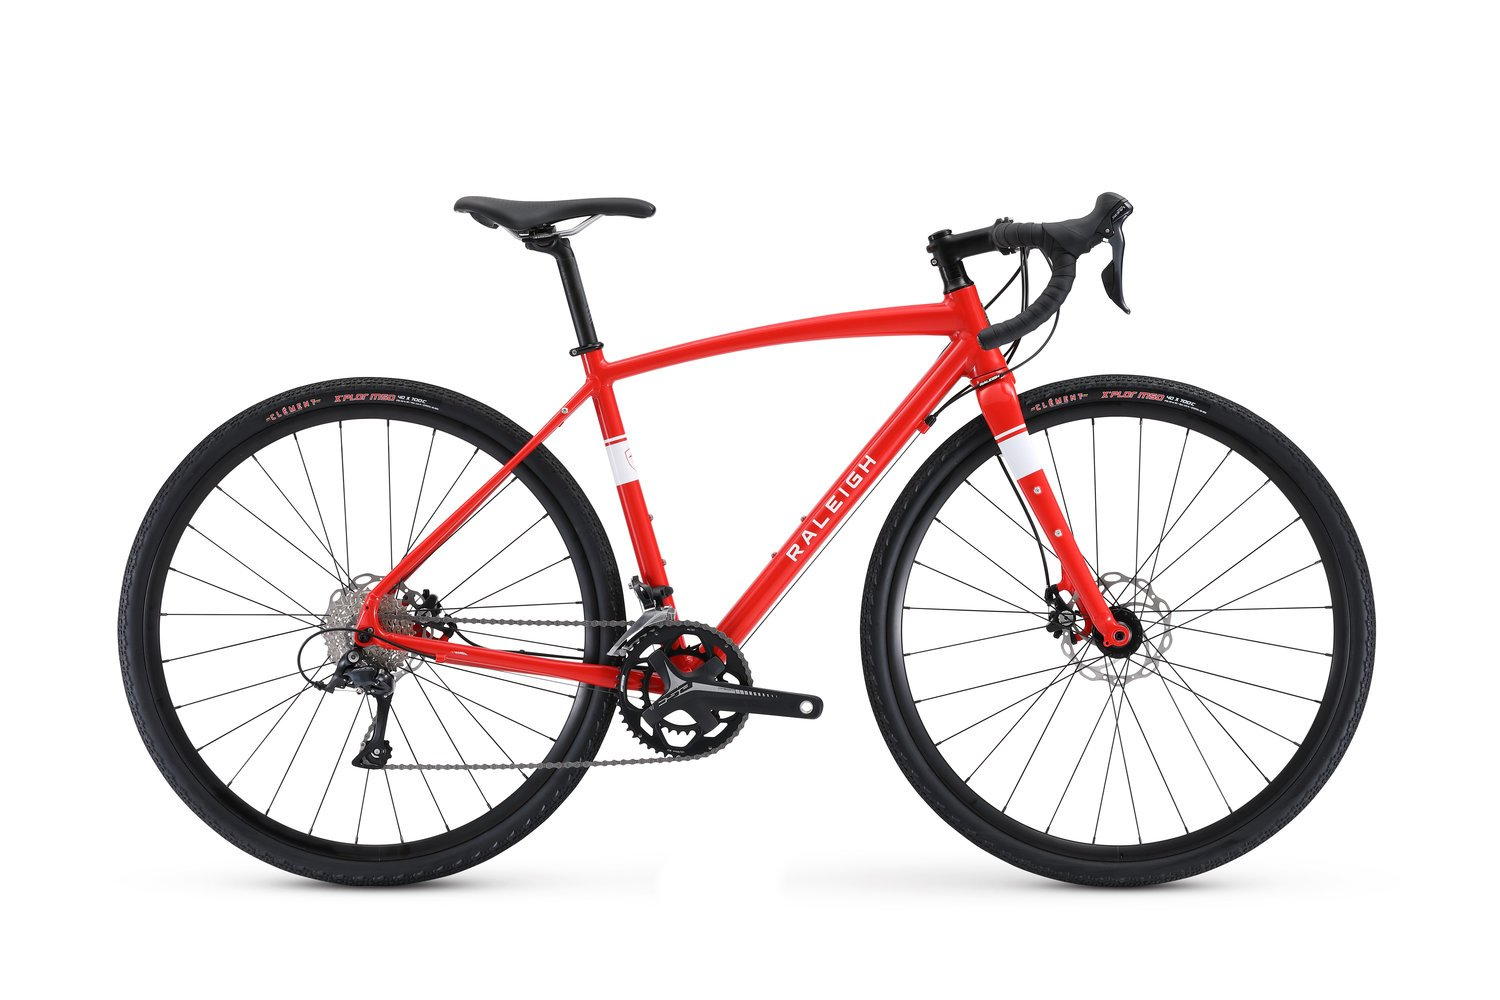 Amazon.com : Raleigh Bikes Amelia 2 Womens Adventure Road Bike 48cm Frame : Sports & Outdoors